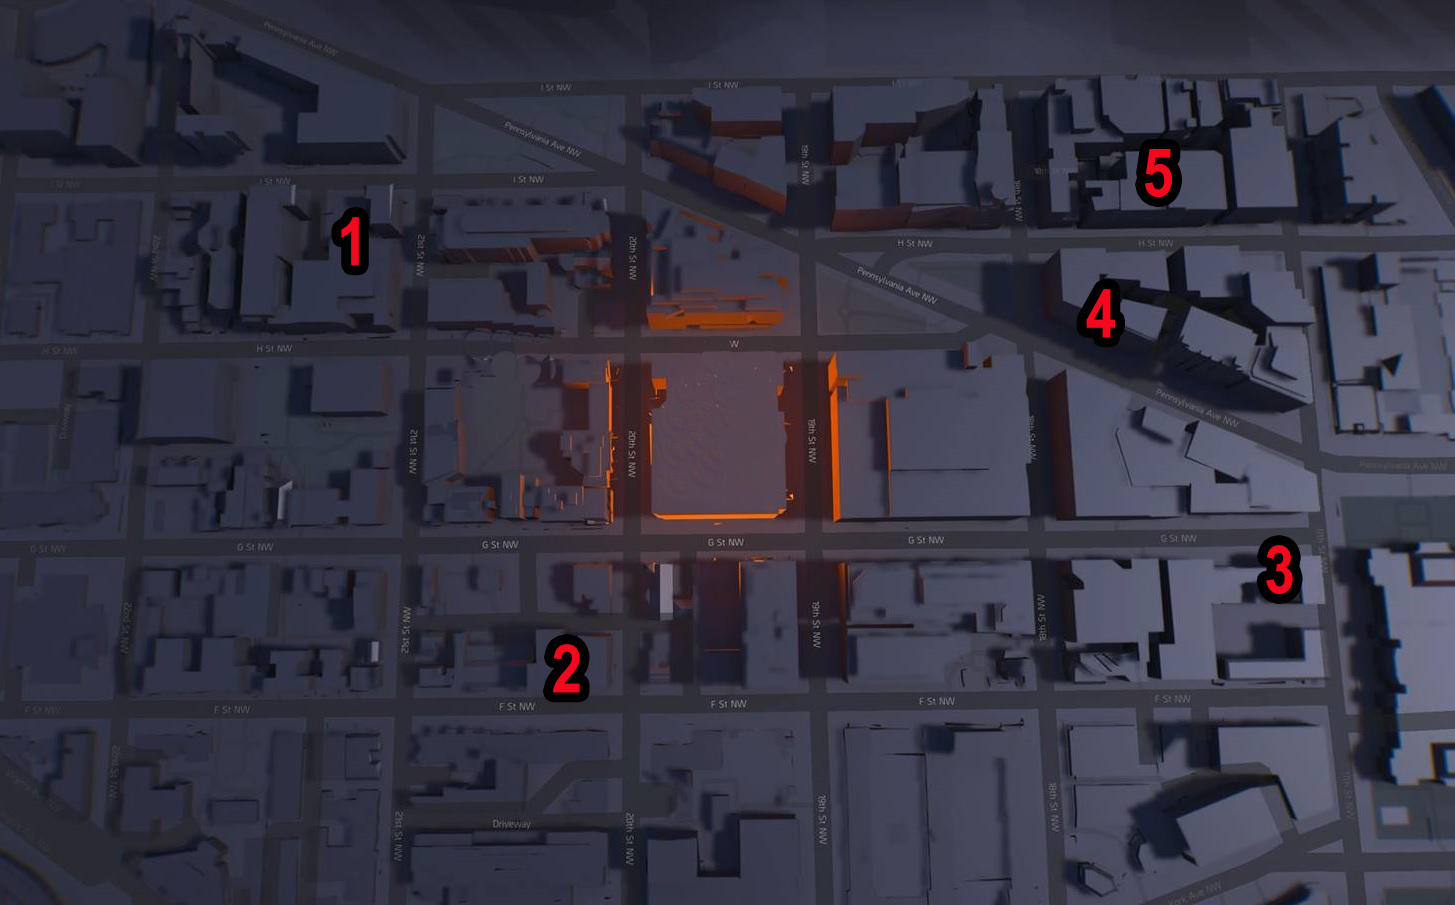 Downtown West SHD Tech Caches | Division 2 | Locations & Map